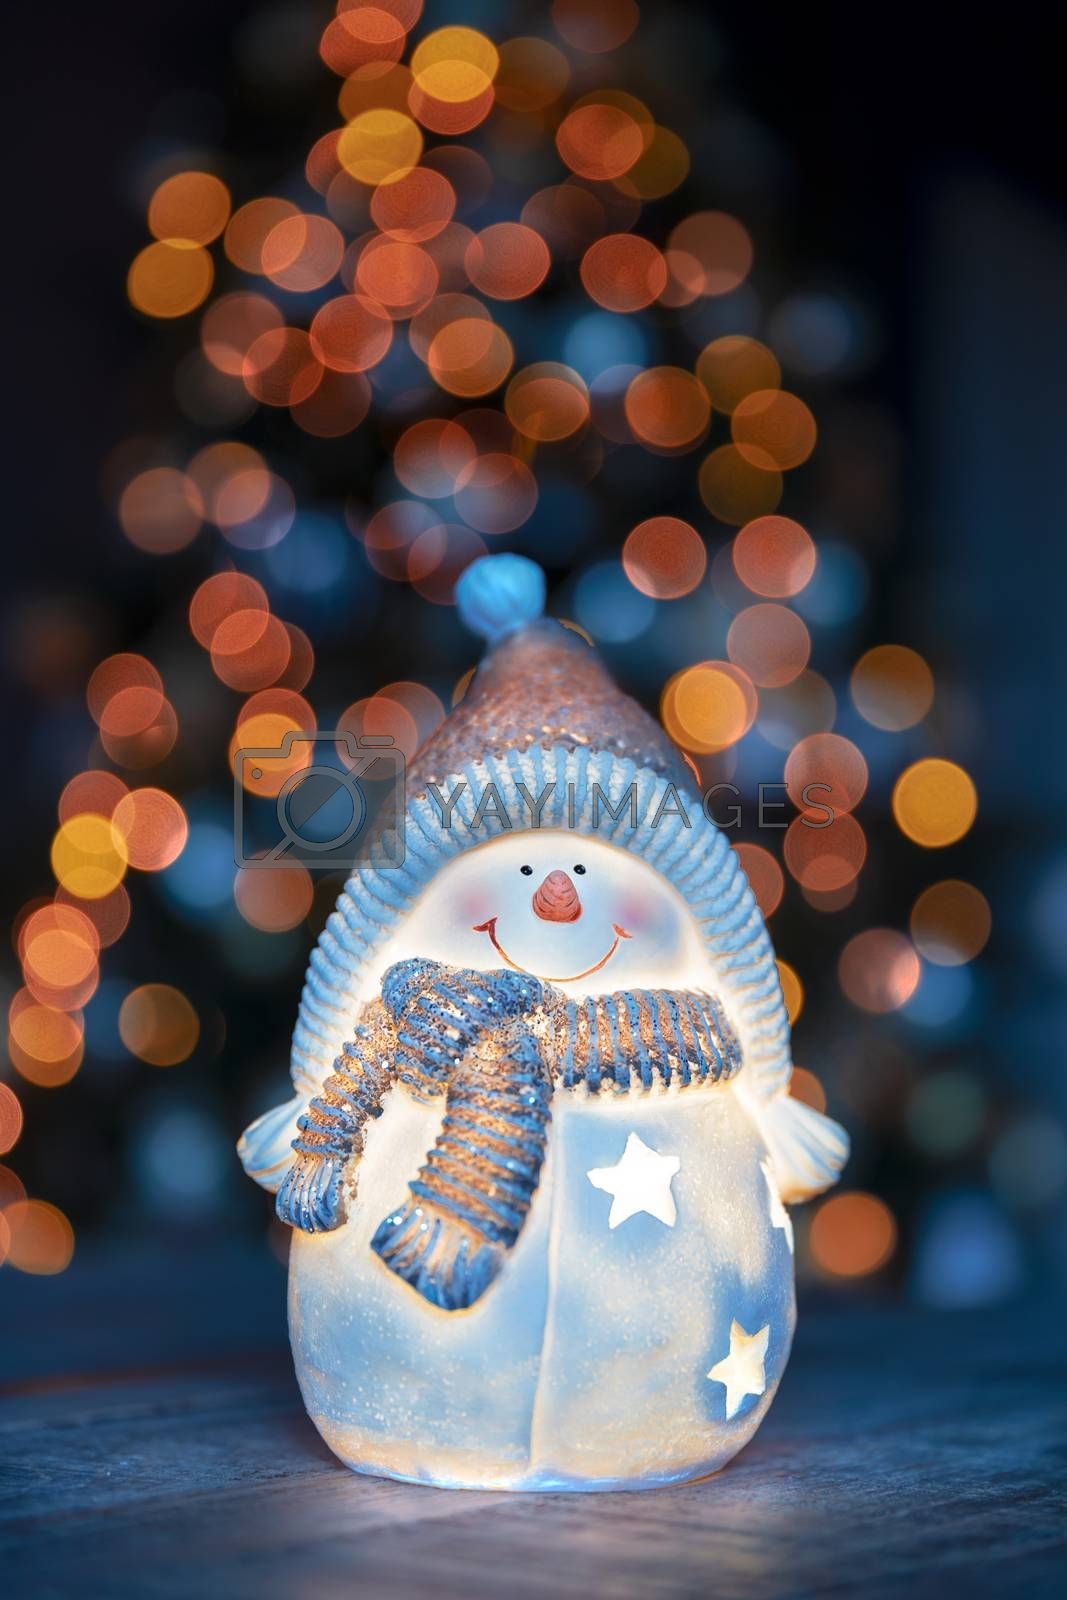 Little decorative snowman toy on the table over glowing Christmas tree background, happy winter holidays, traditional New Year and winter character